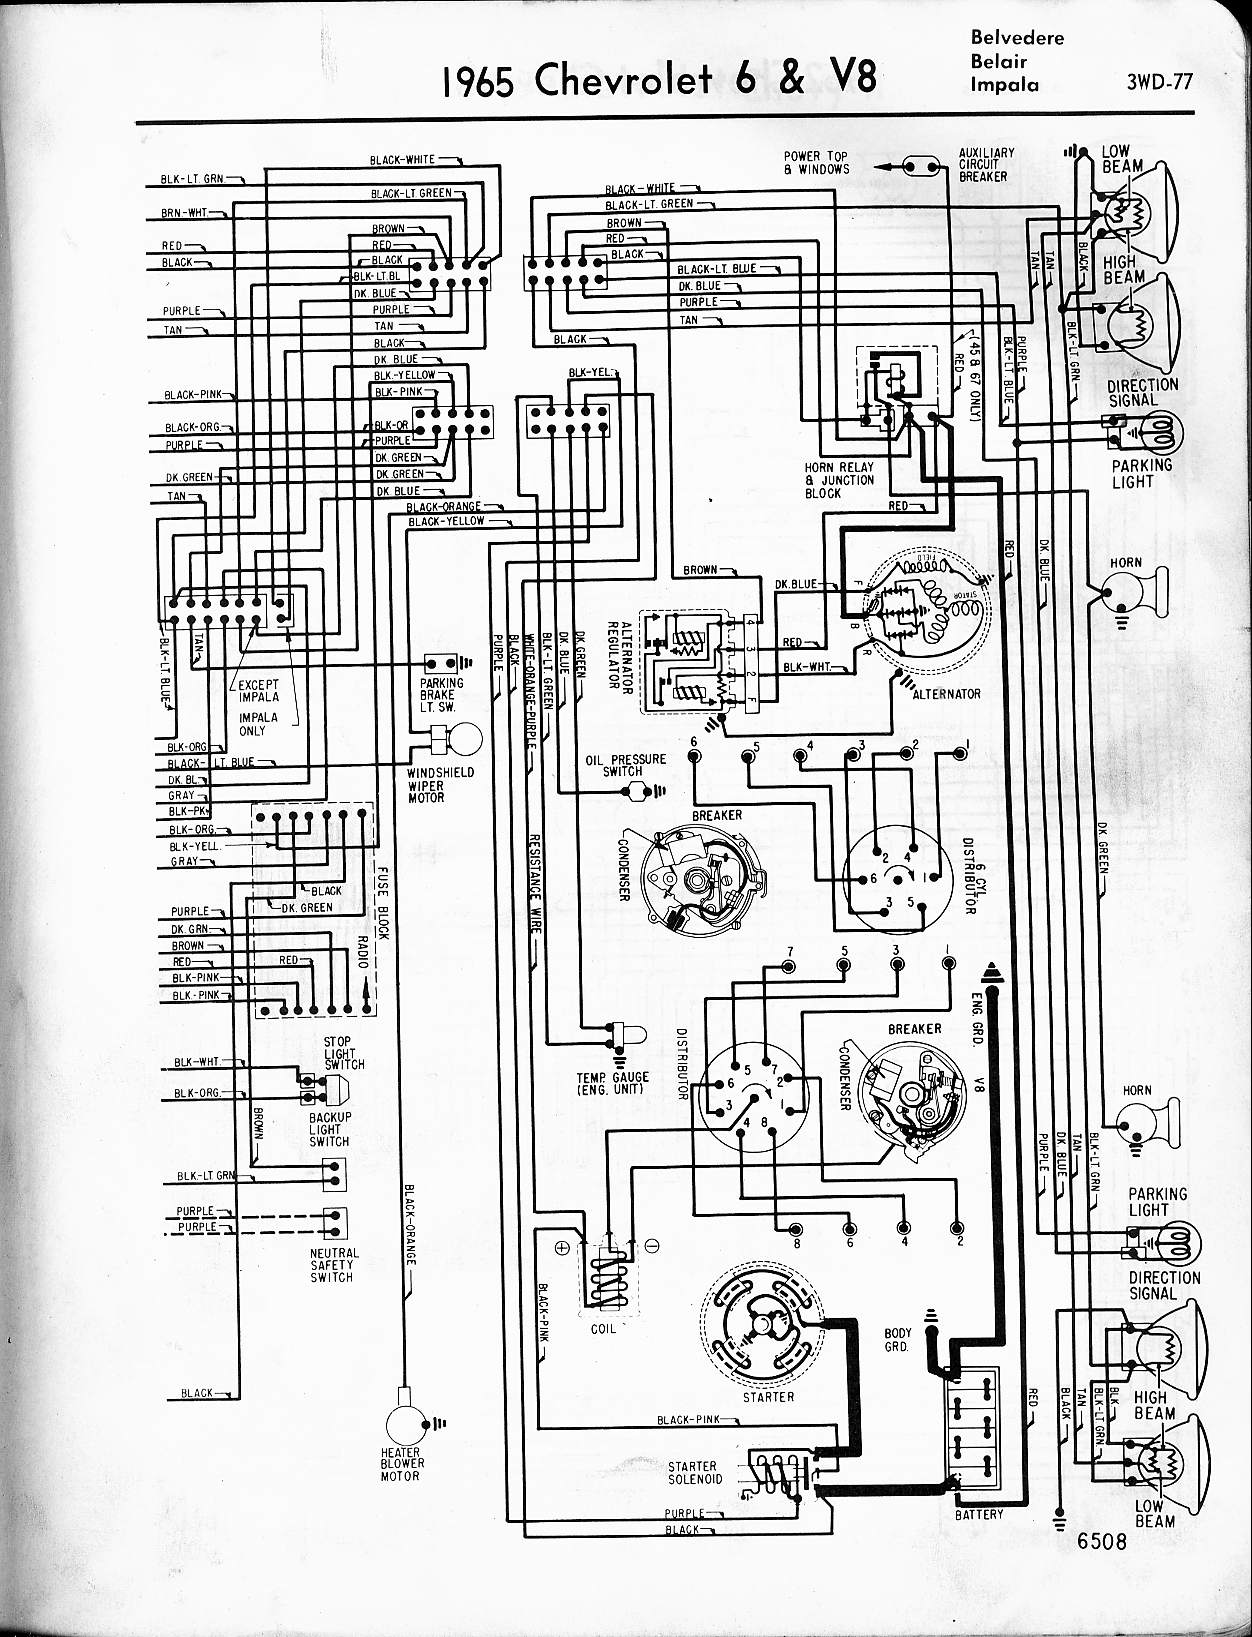 MWireChev65_3WD 077 57 65 chevy wiring diagrams Chevy Impala Transaxle at pacquiaovsvargaslive.co